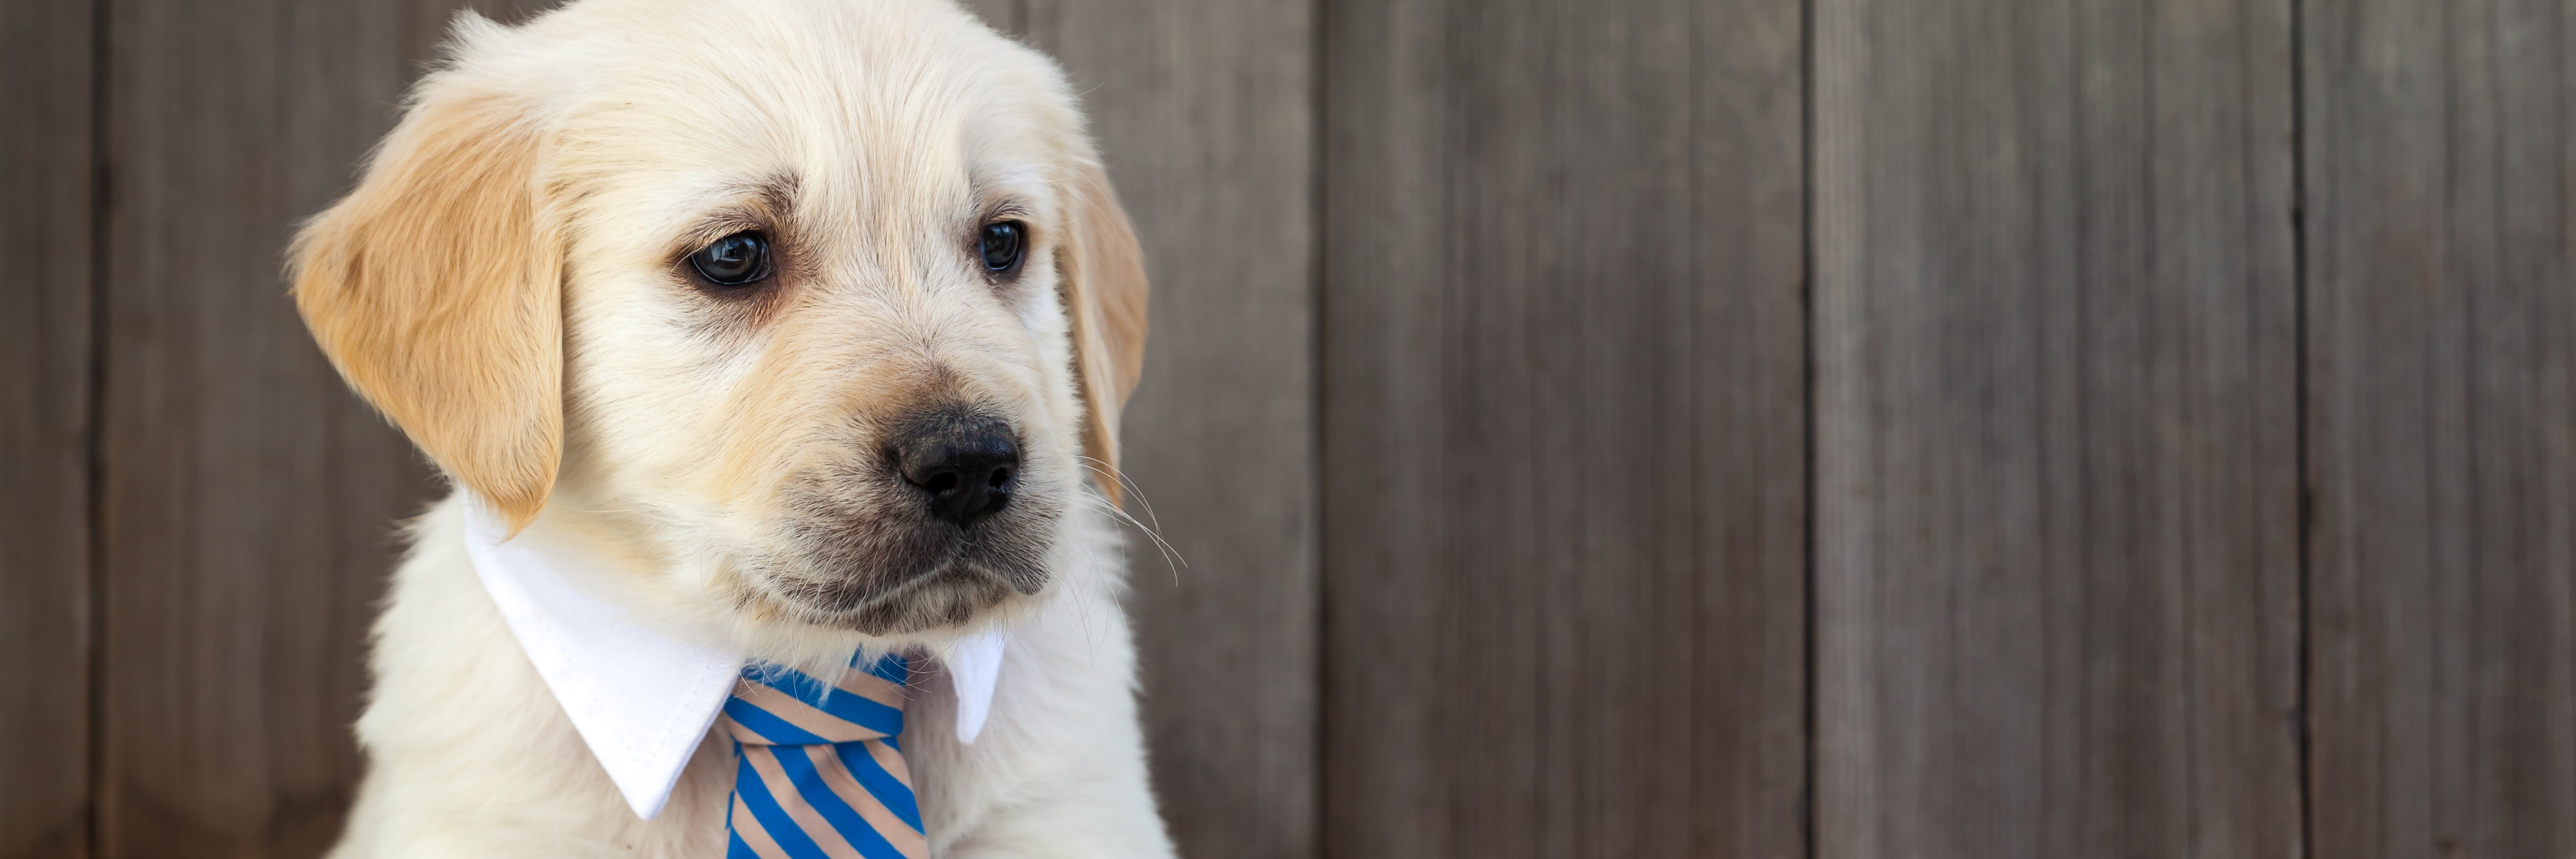 Cute puppy wearing a tie illustrates story on what my dog taught me about feelings | healthcare news | Primaris